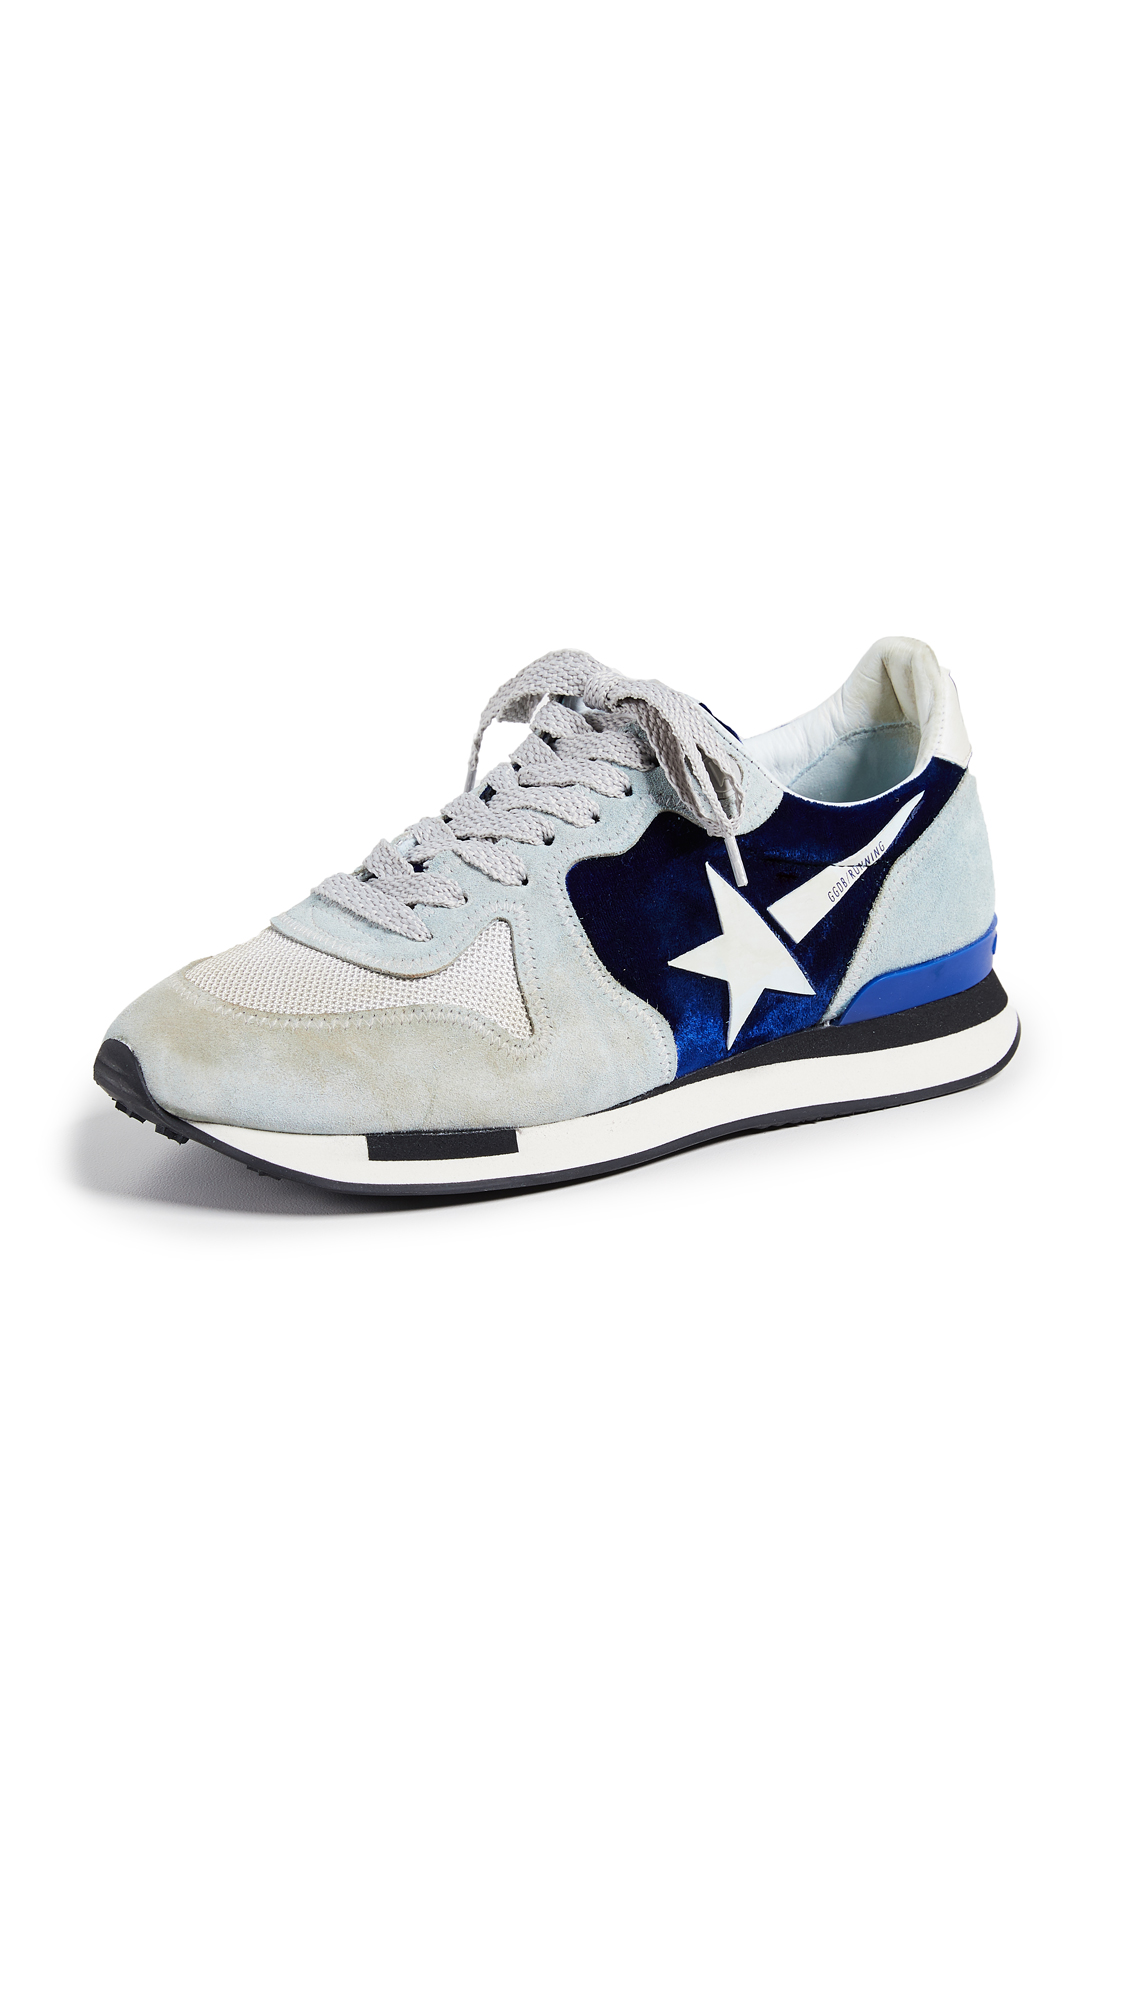 Golden Goose Running Sneakers - Blue/Light Blue